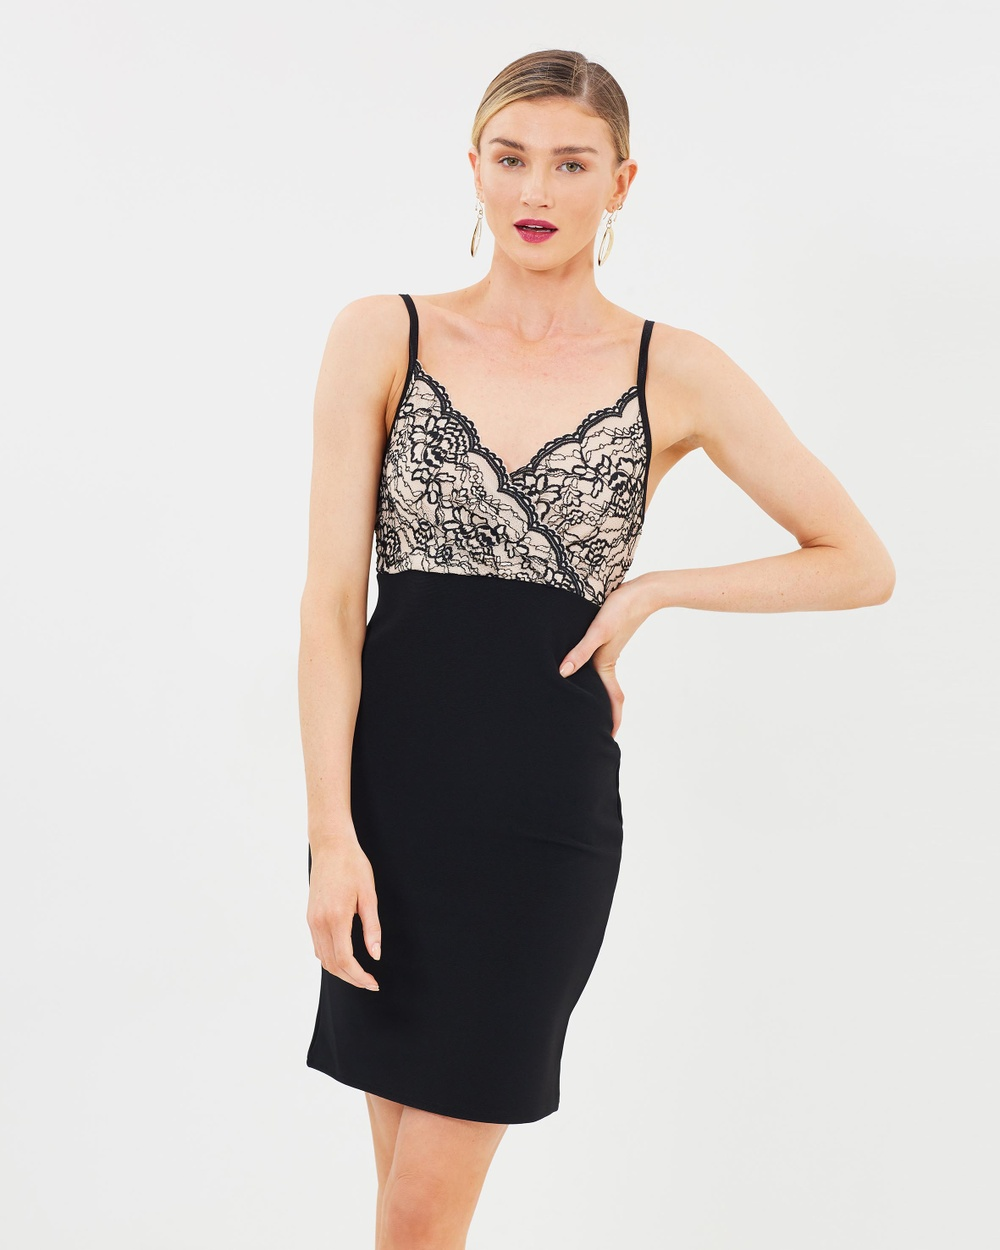 Dorothy Perkins Strappy Lace Body Con Dress Bodycon Dresses Black & Stone Strappy Lace Body-Con Dress